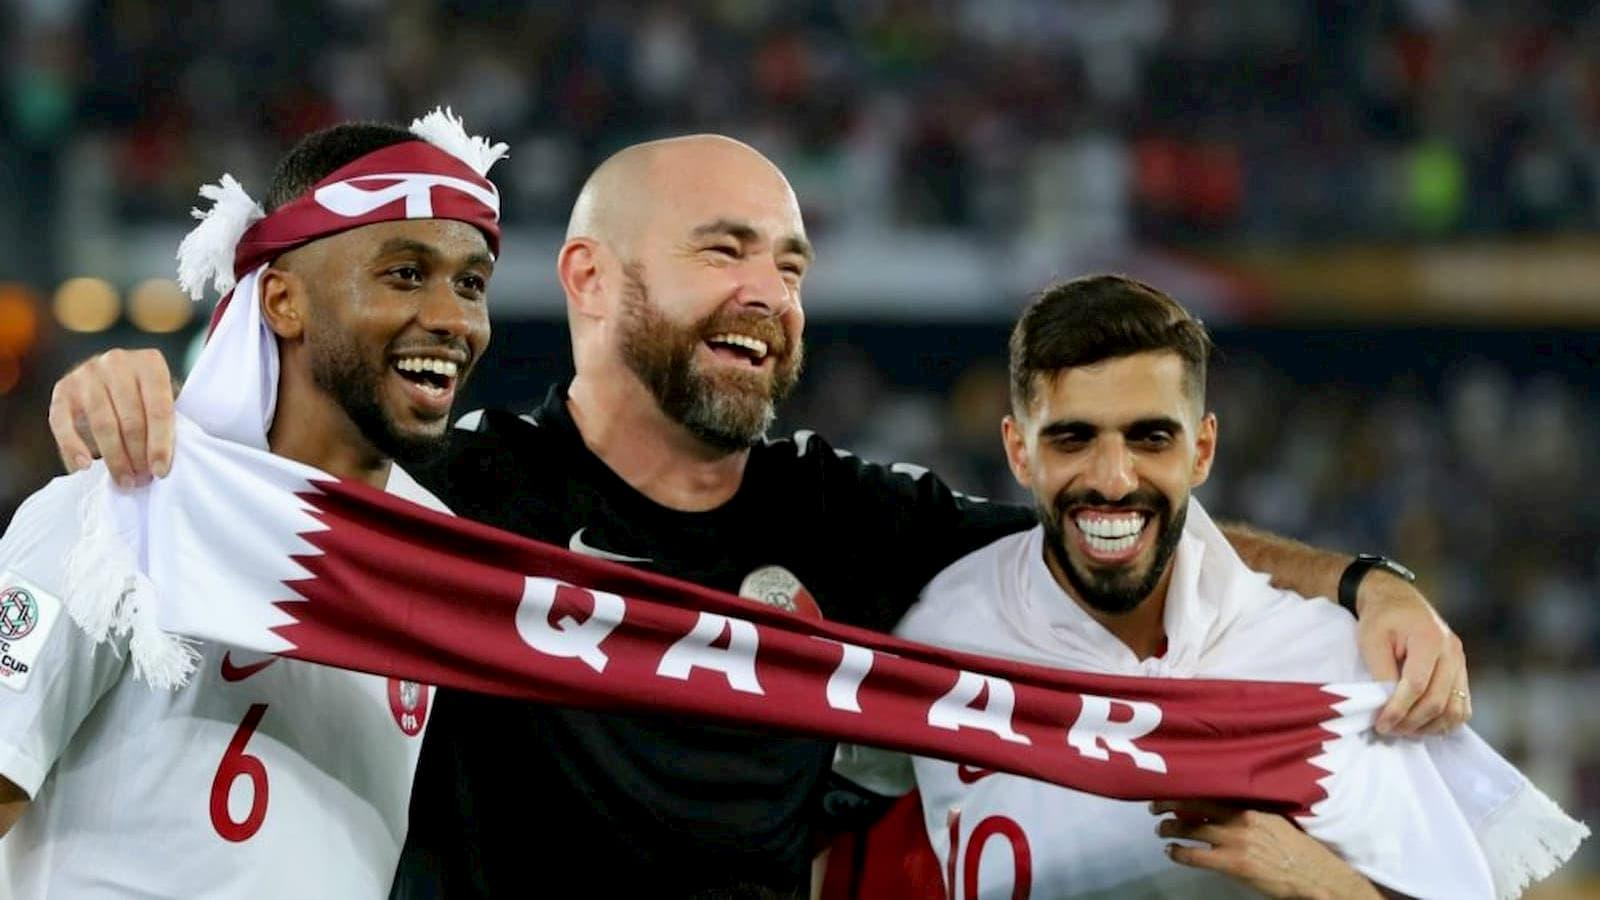 Qatar's Asian Cup-winning coach Felix Sanchez nominated among greatest AFC Asian Cup coaches